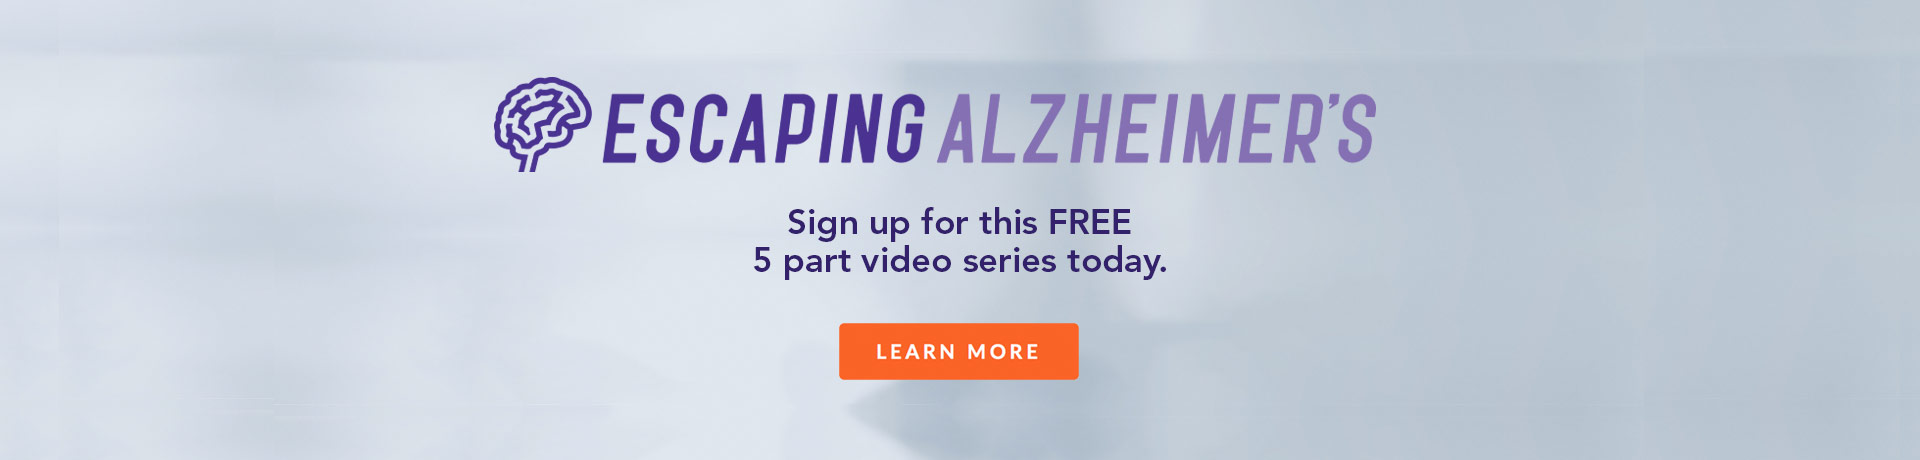 Escaping Alzheimers